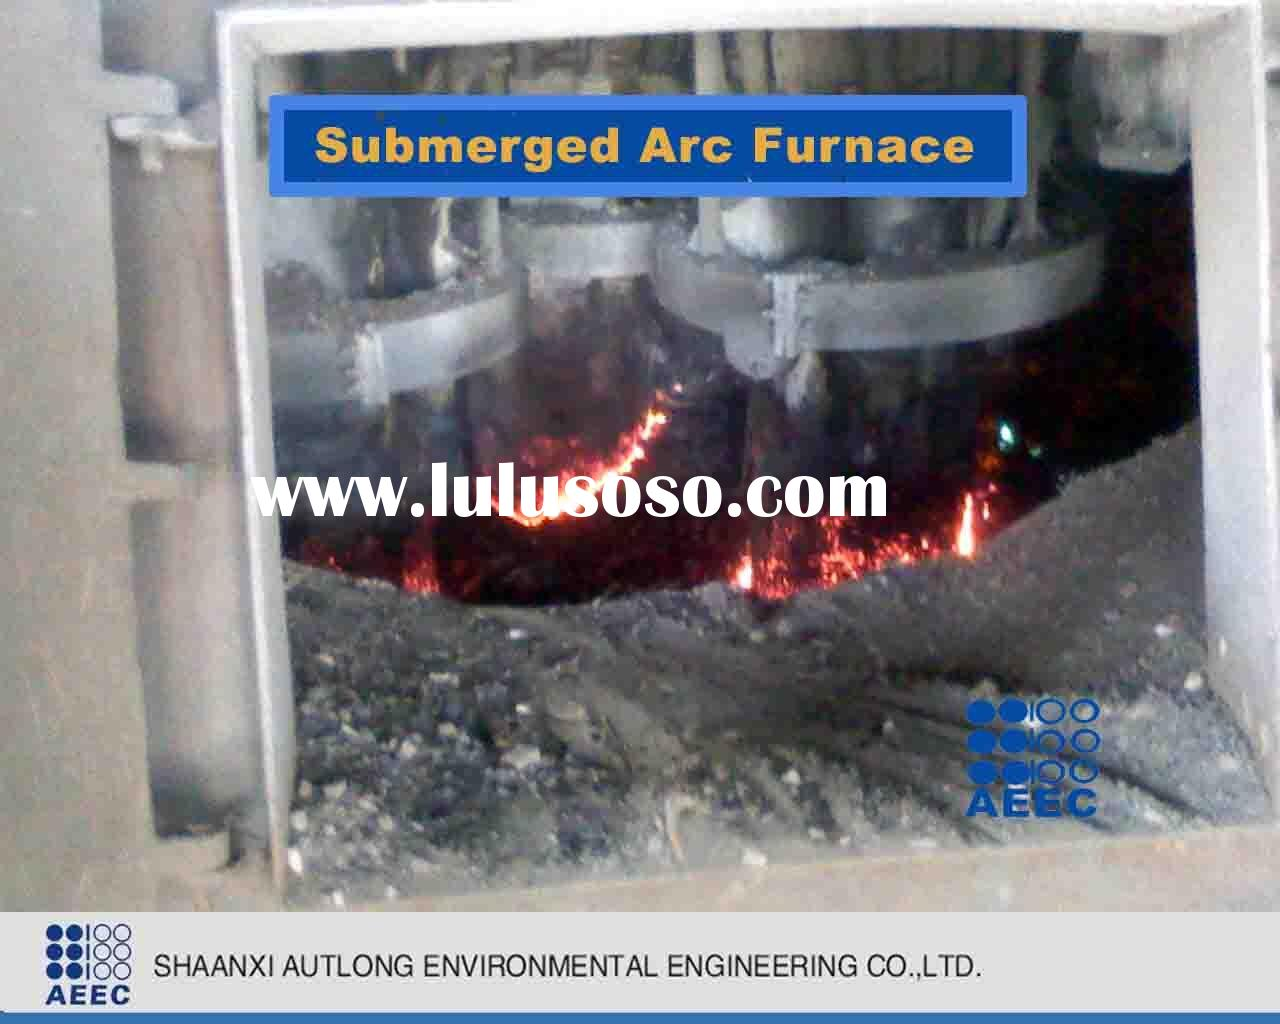 Arc Furnace Manufacturers In Page 1 Igbt Inverter Circuit Lulusoso